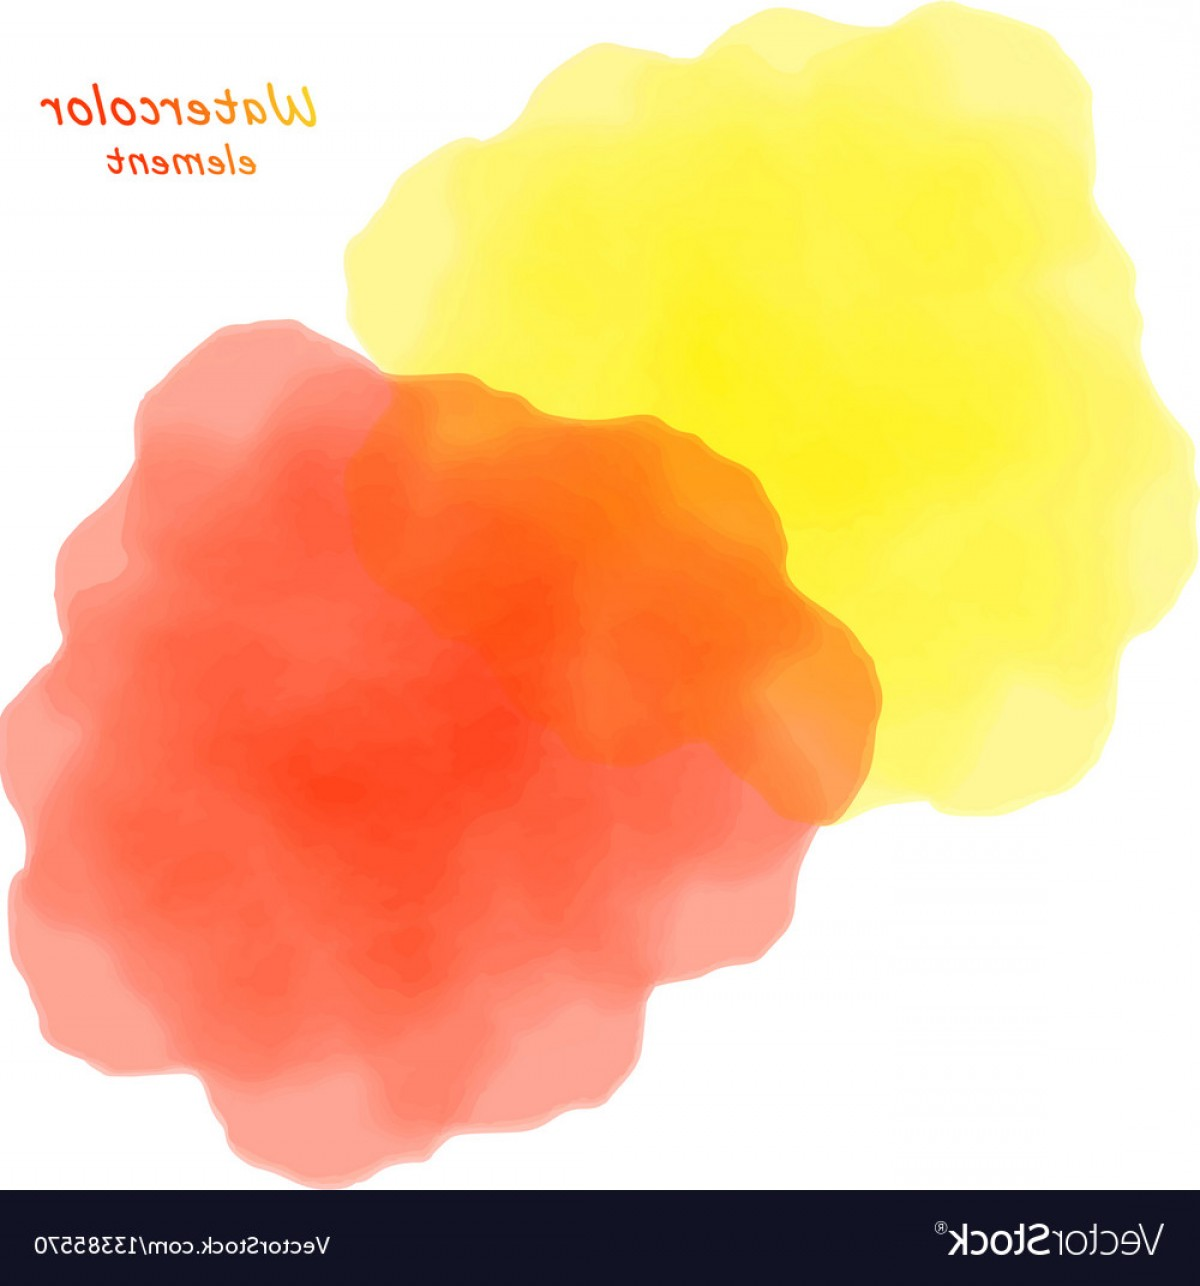 Orange Watercolor Vector Free: Orange Watercolor Blotch Set Of Orange Watercolor Vector